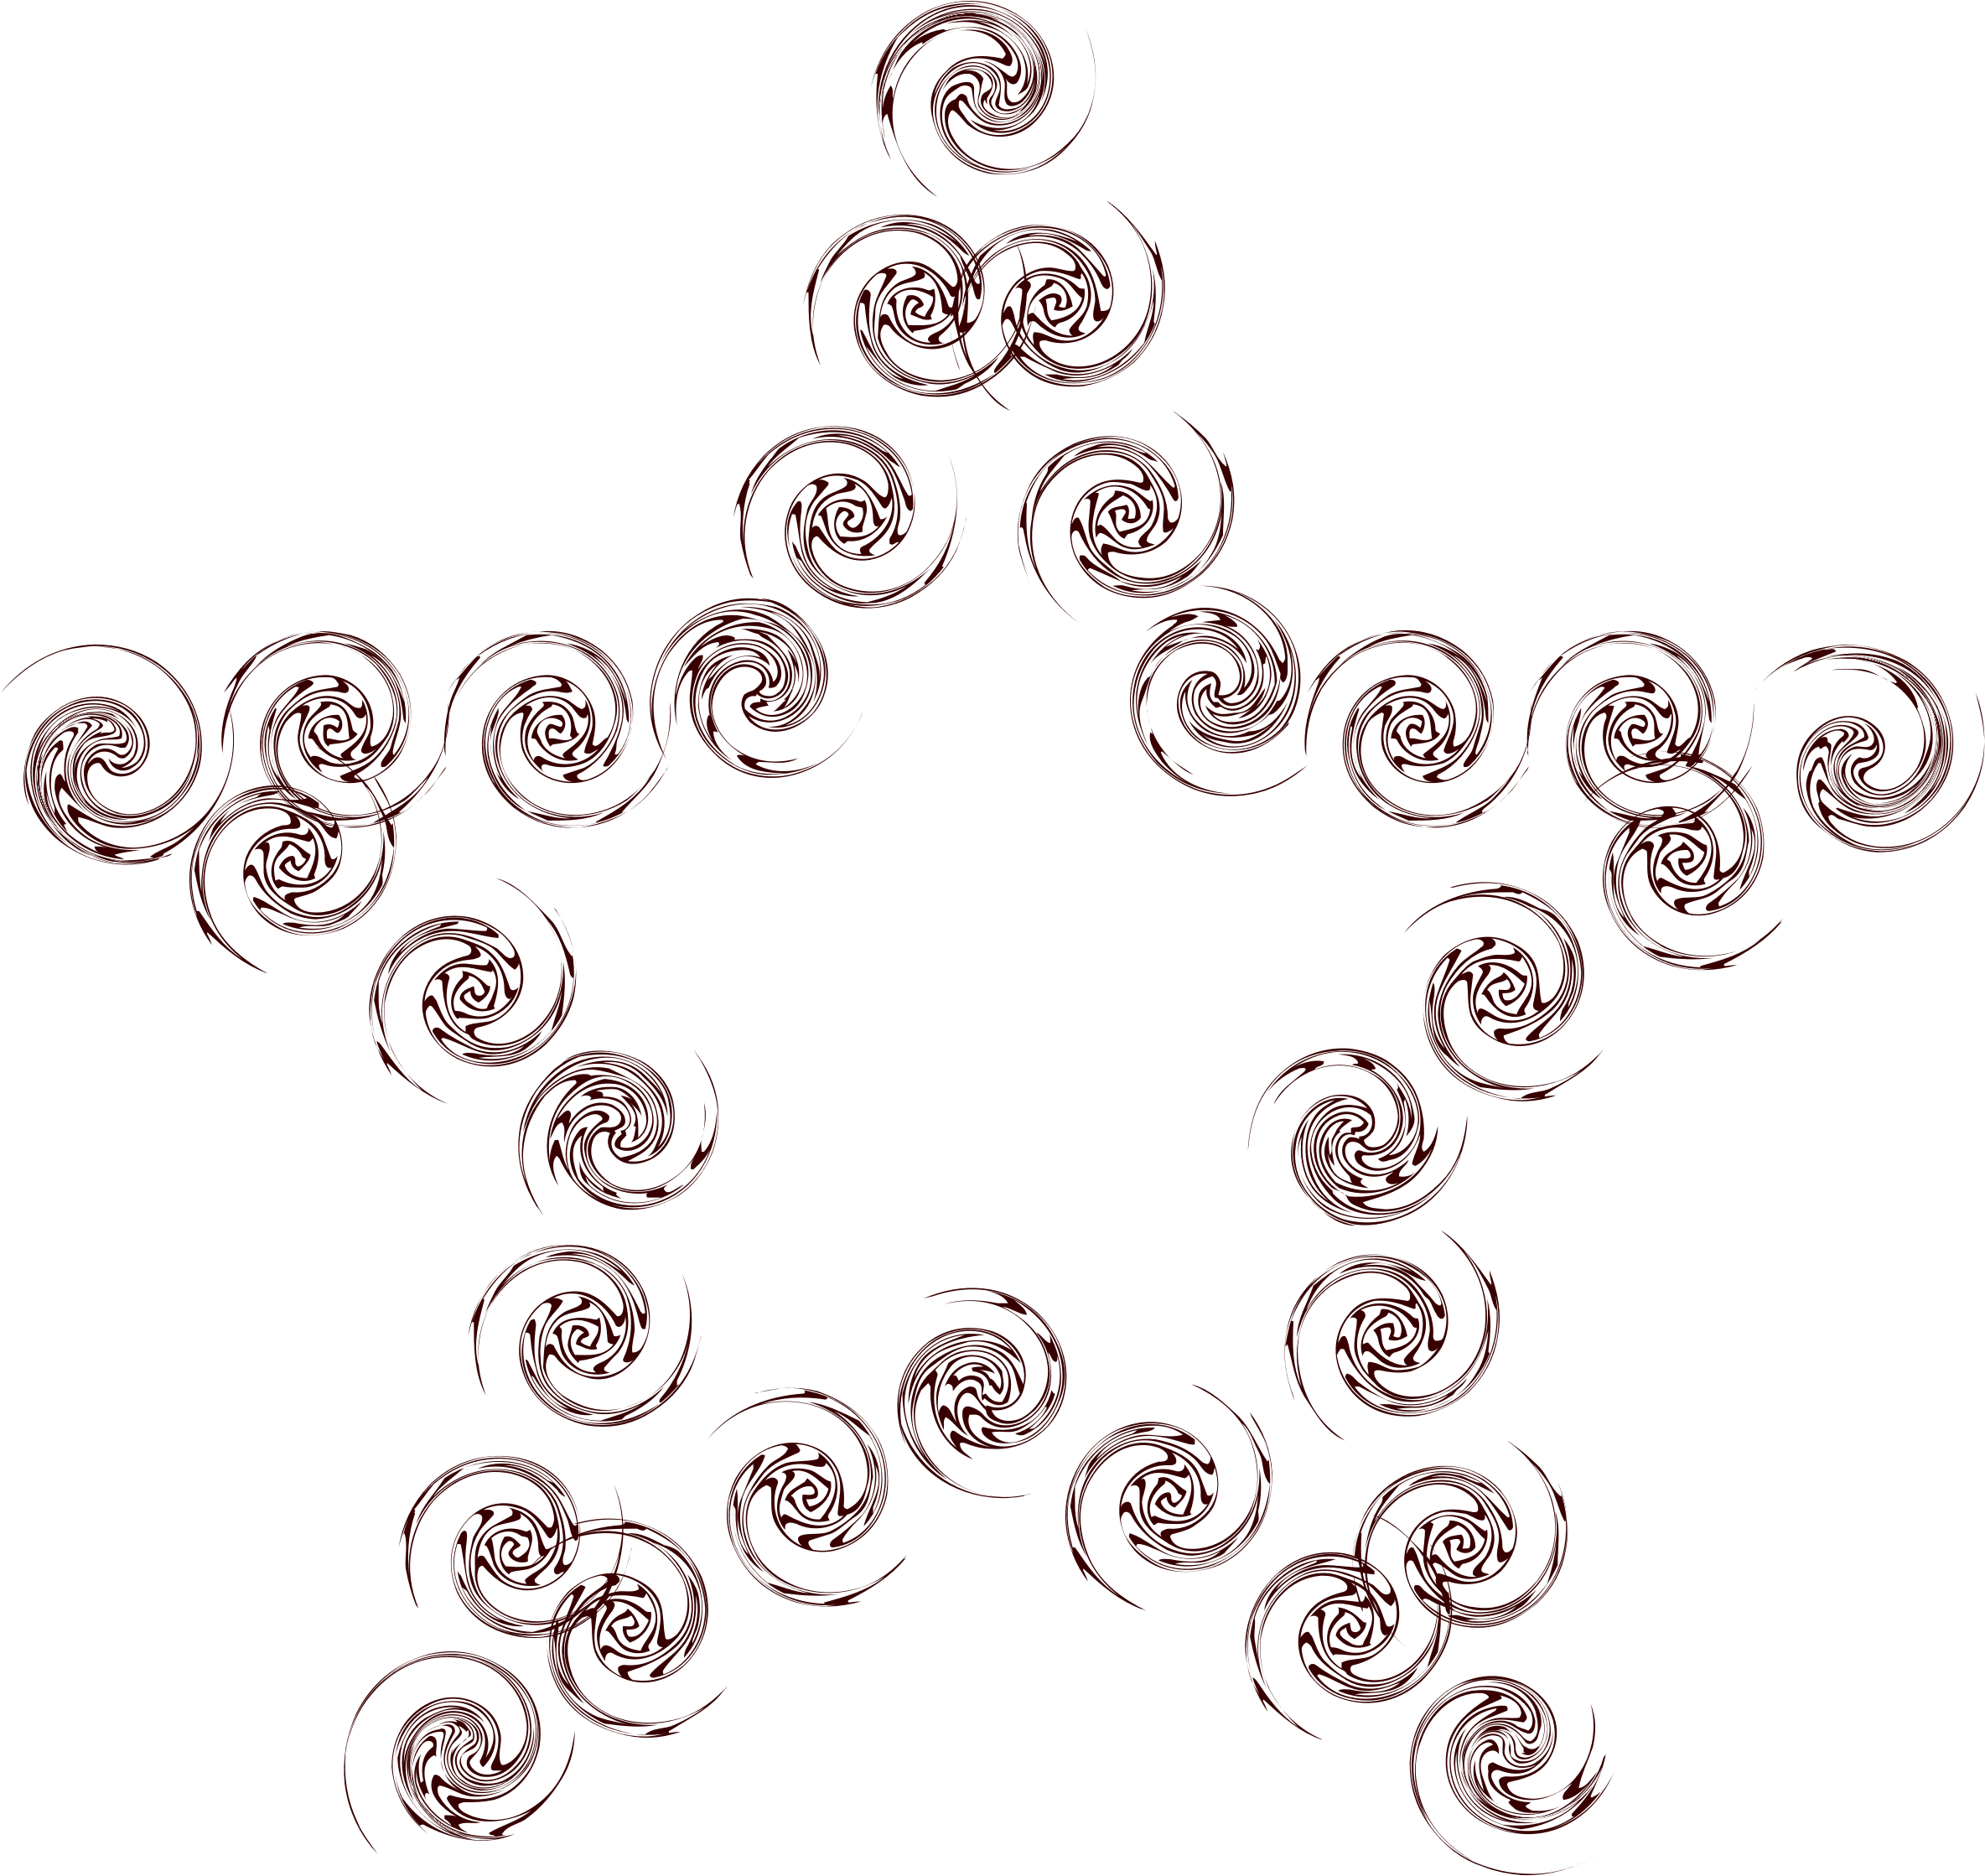 Star swirl clipart picture freeuse library Clipart - Swirl Star picture freeuse library